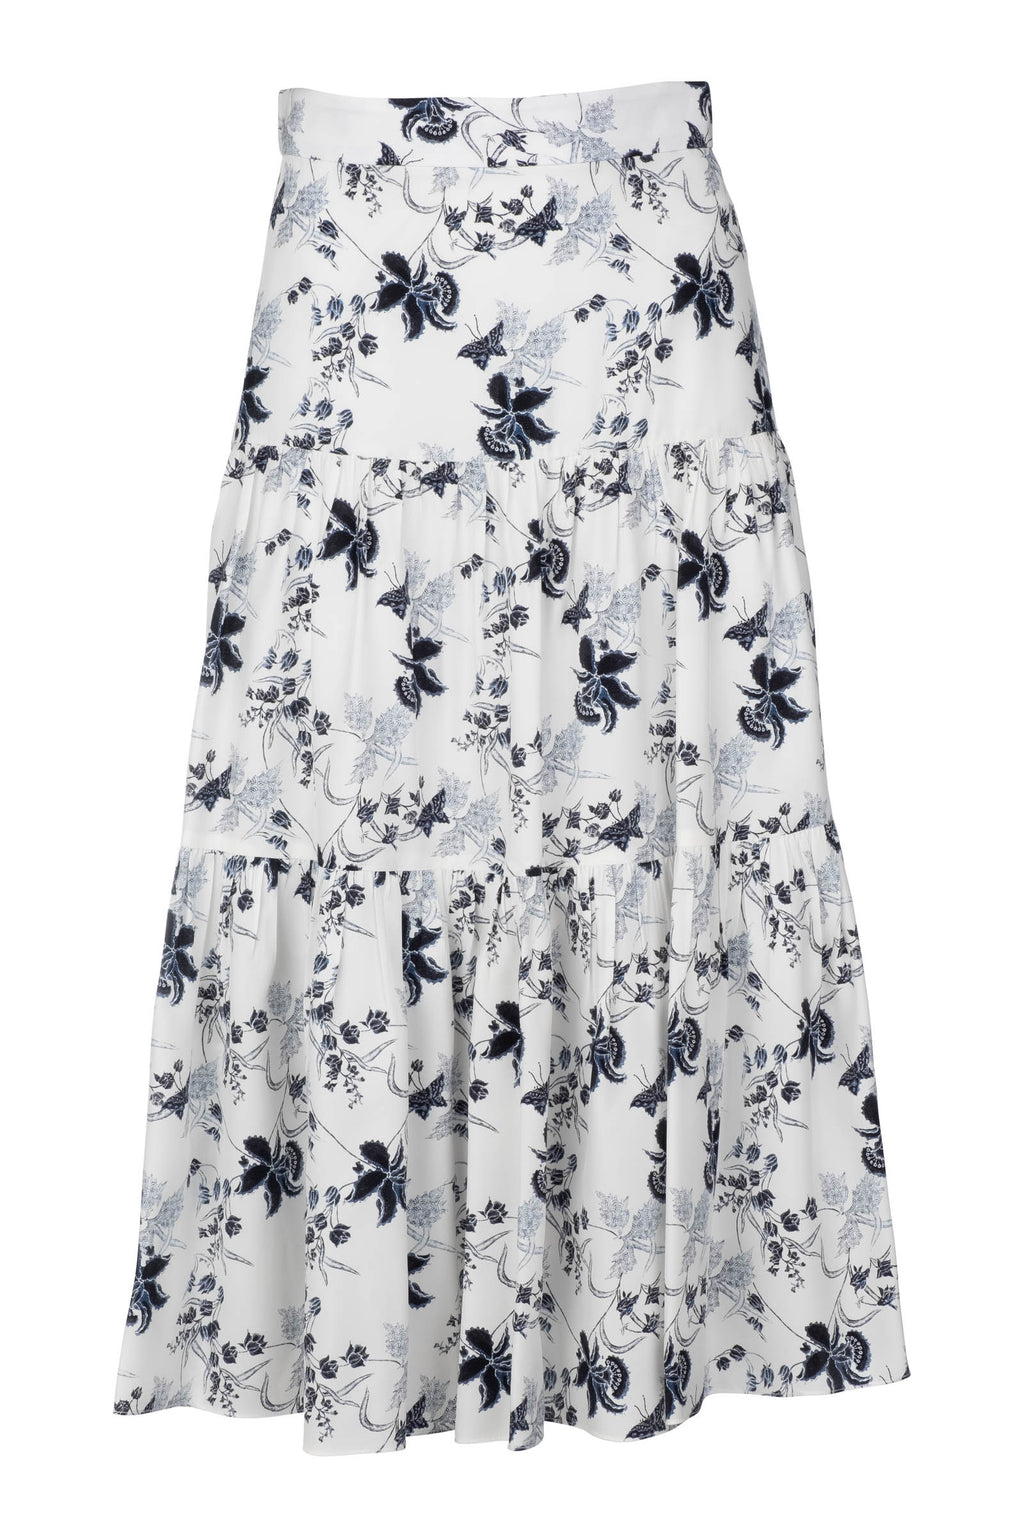 Tiered Midi Skirt - Butterfly Batik